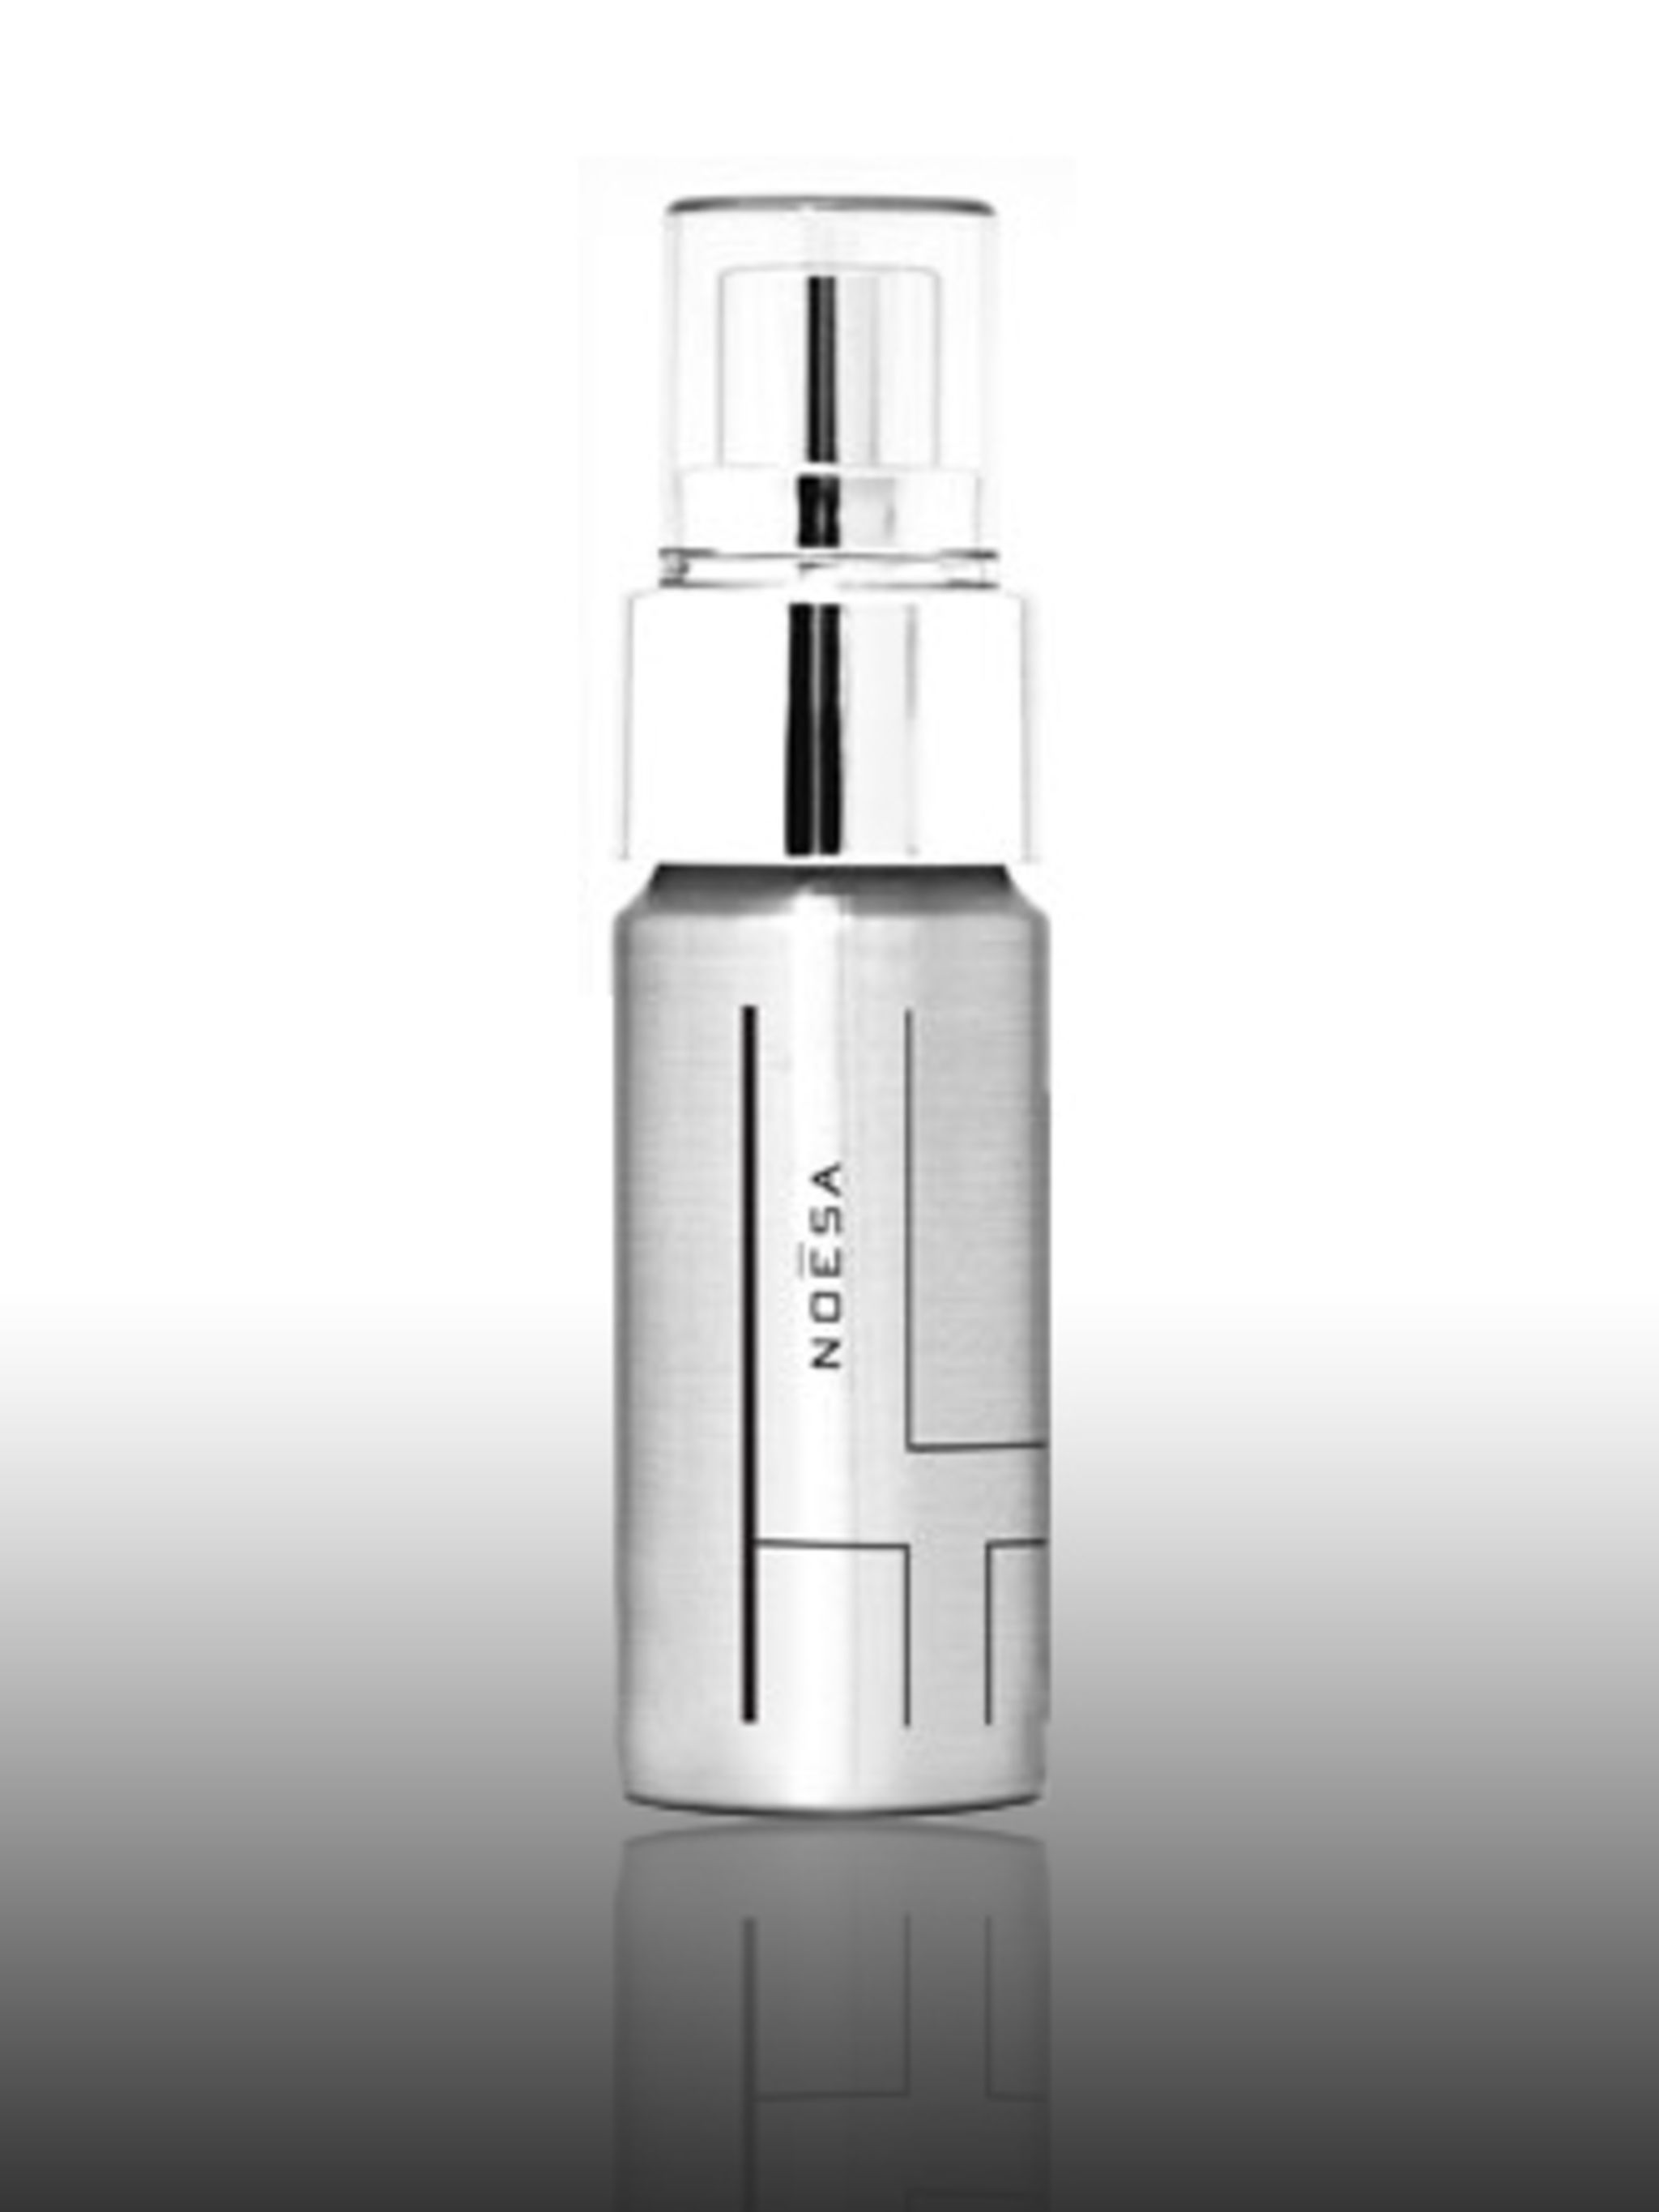 """<p>Glow Booster Serum, £340 by Noesa at <a href=""""http://www.zuneta.com/"""">Zuneta</a> Noesa is an innovative new skincare brand which aims to encourage cell renewal in order to repair the structure of the skin. Founded by Gerd Gerken, Noesa uses their own i"""